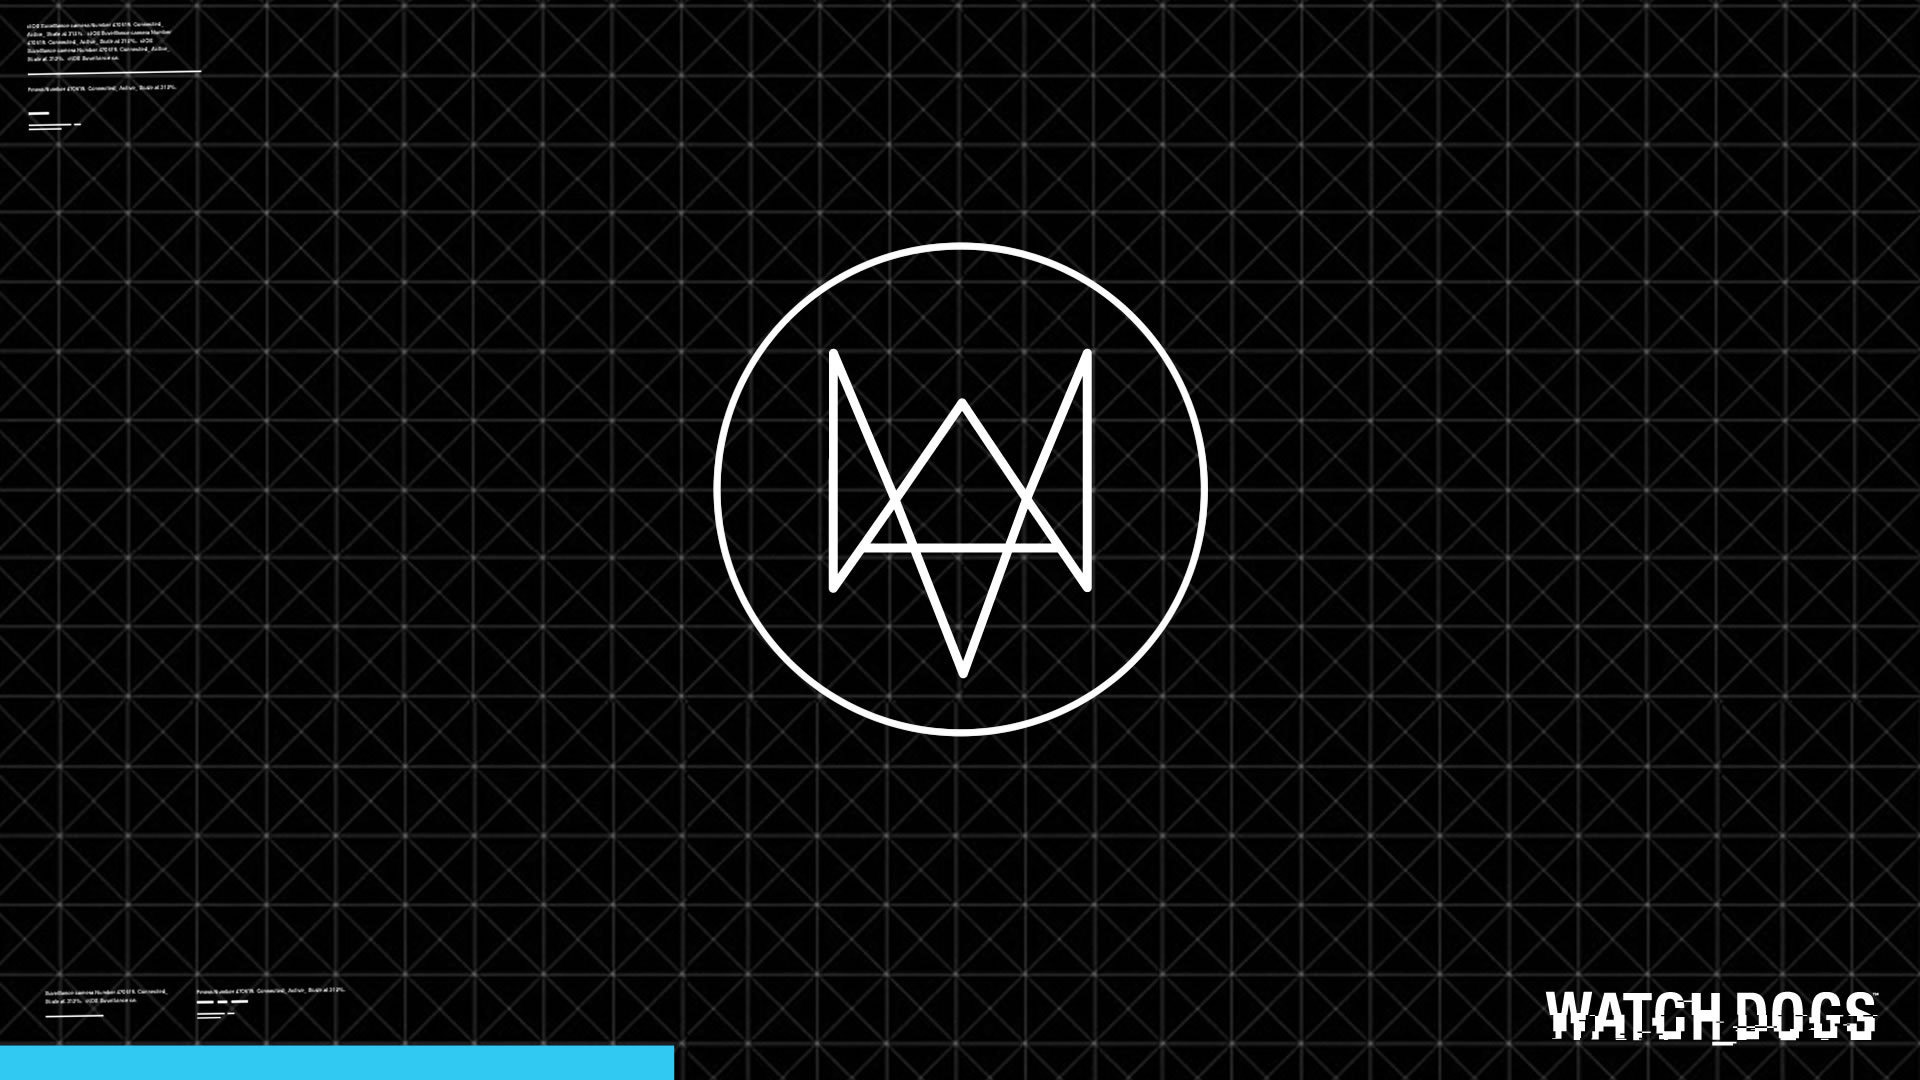 watch dogs fox logo wallpaper - photo #4